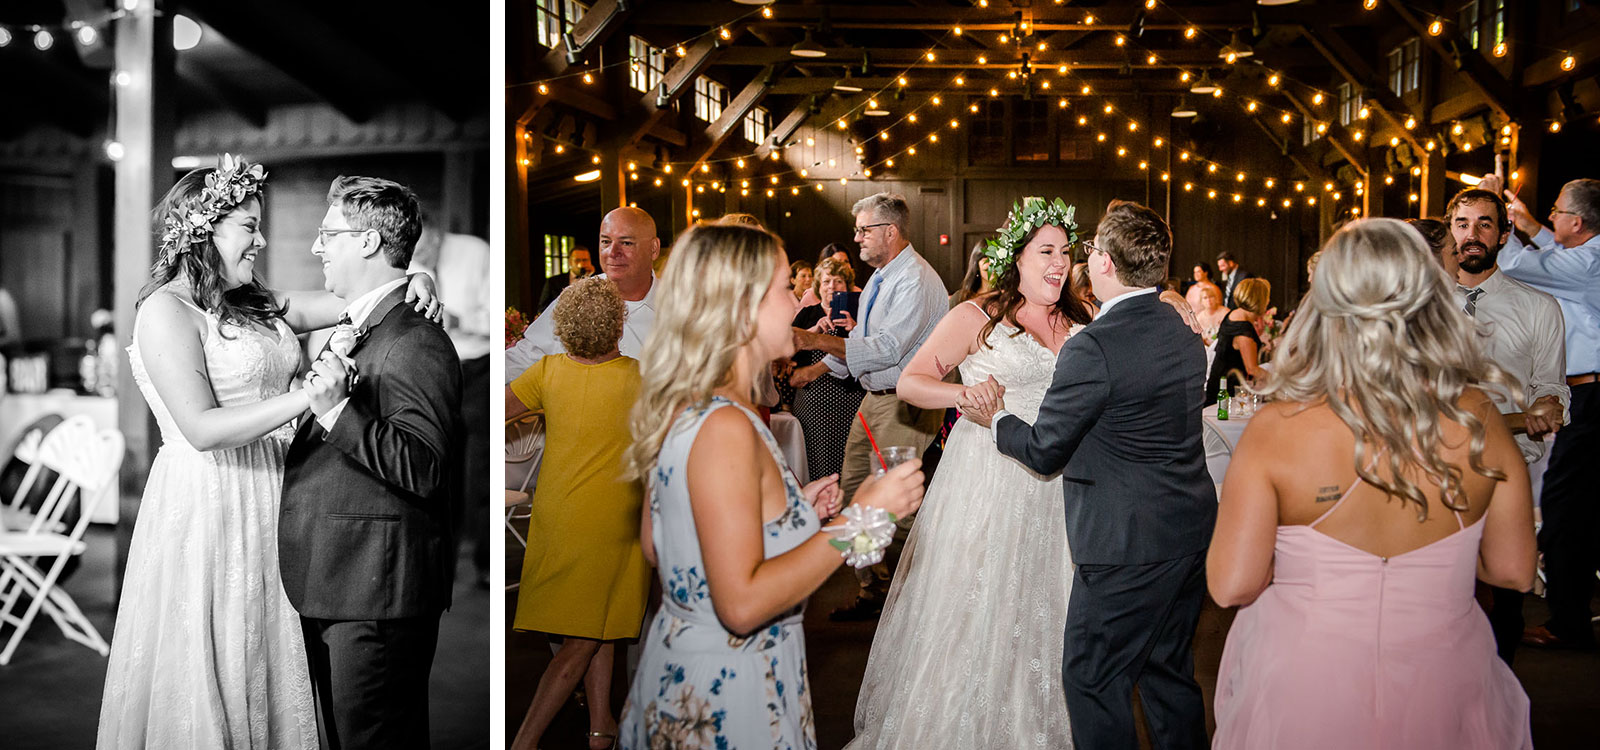 Eric_and_Christy_Photography_Blog_Wedding_Keara&Andy-55-56